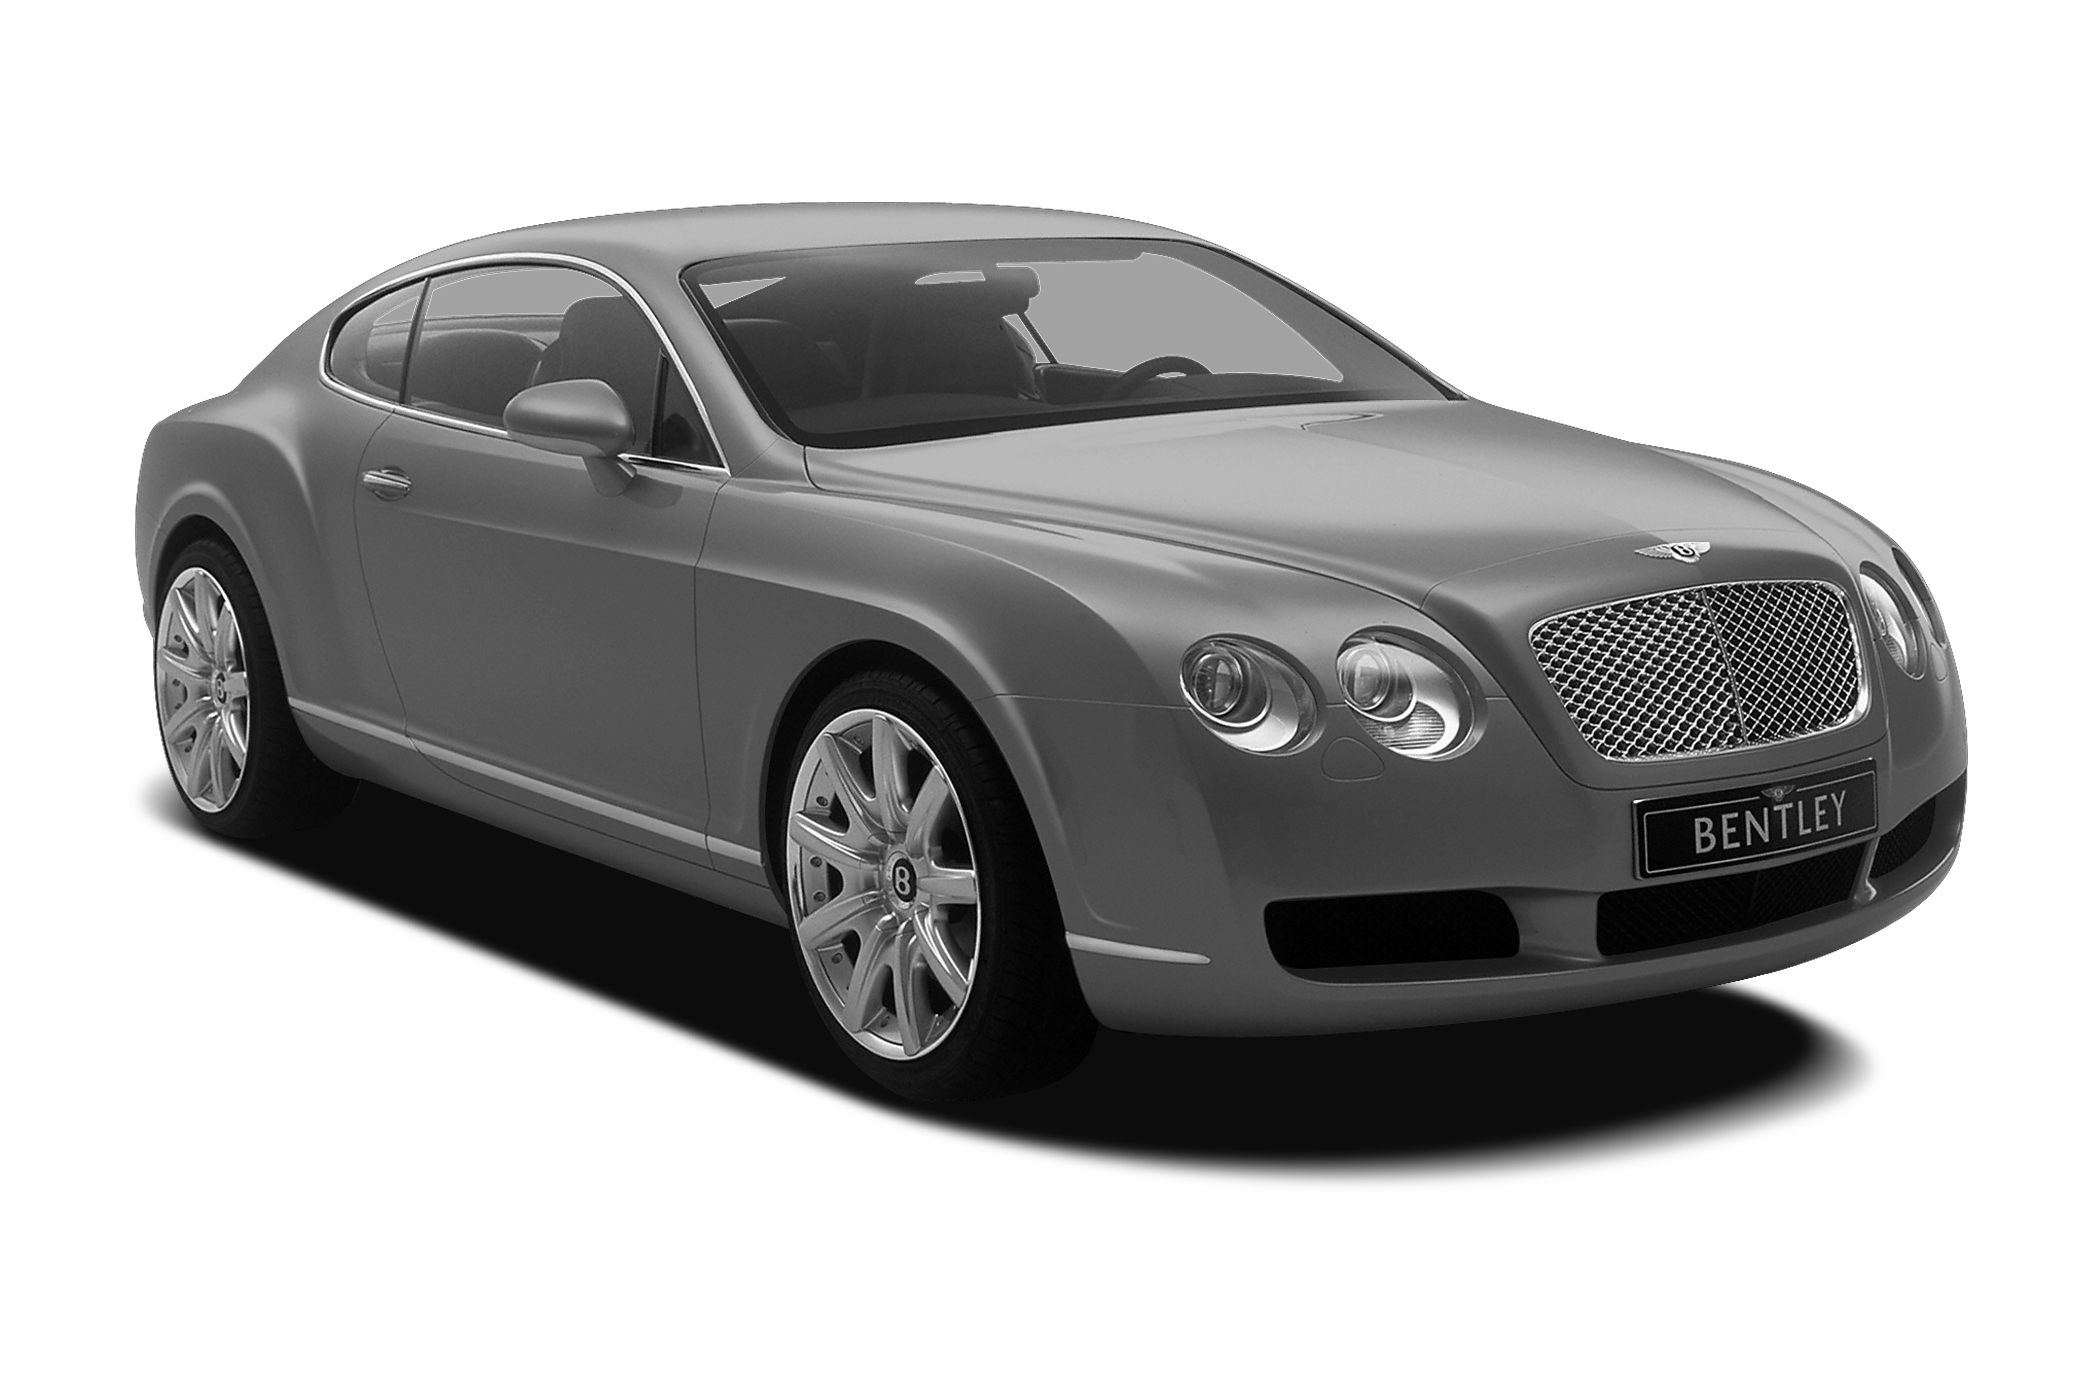 photos continental informations articles com sedan h bentley bestcarmag makes gt door price